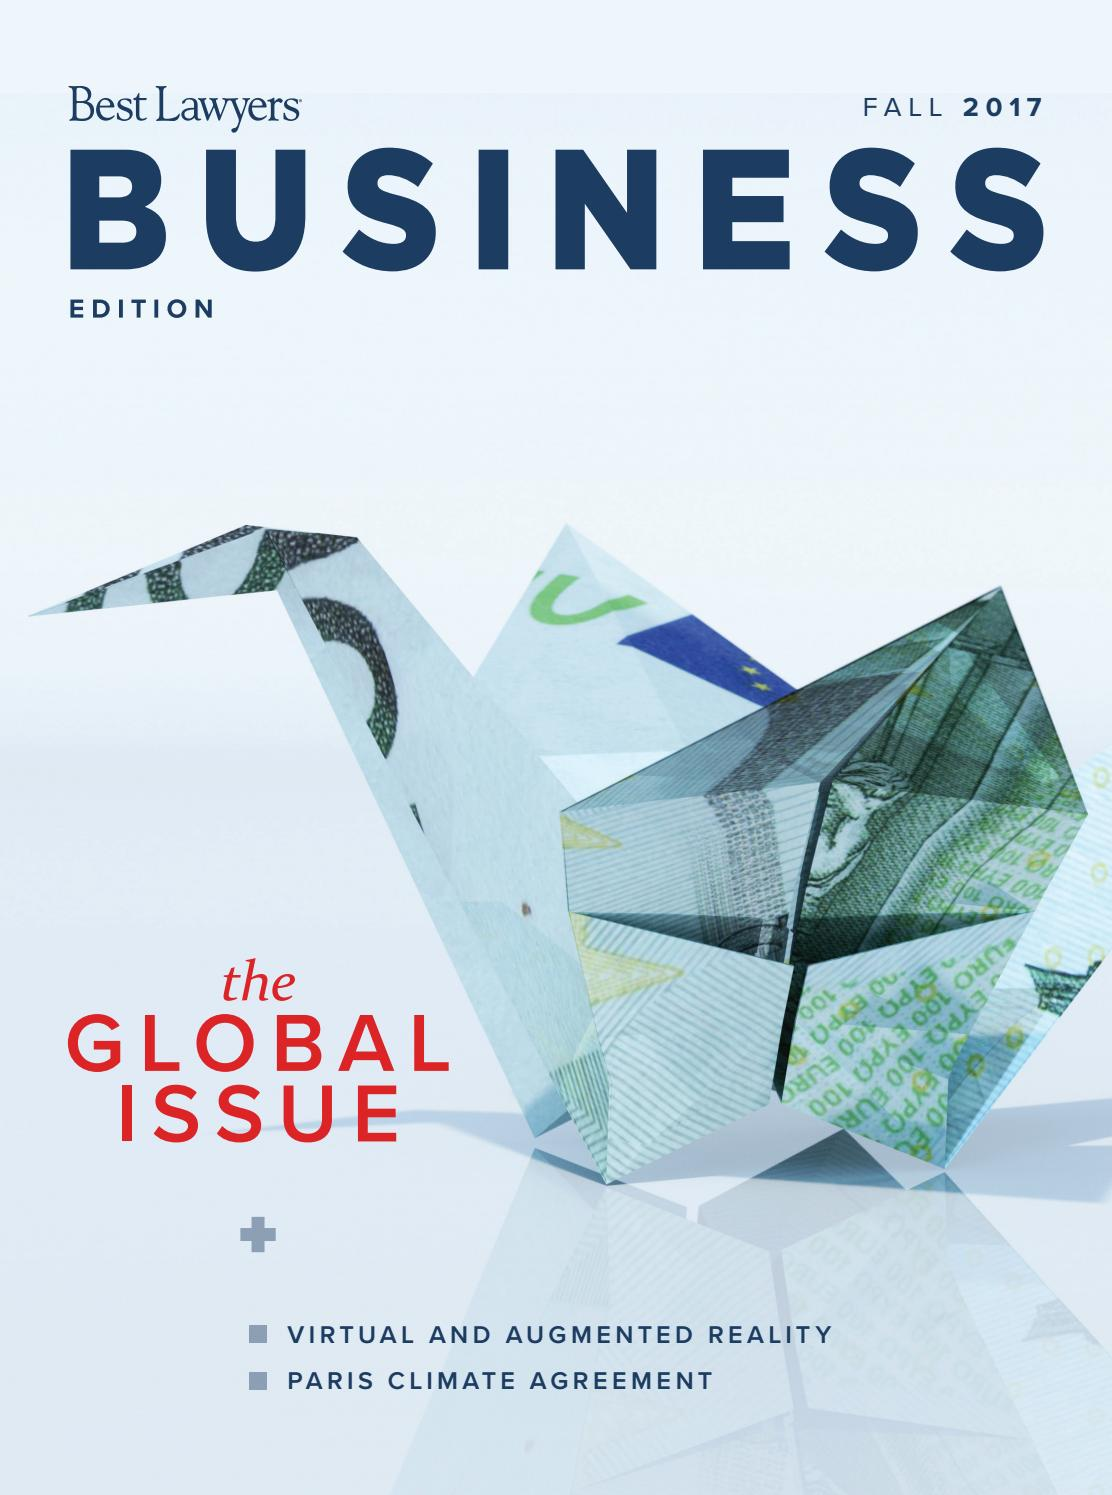 La Cucina Catering Britt Wetzel Best Lawyers Global Business Edition 2017 By Best Lawyers Issuu